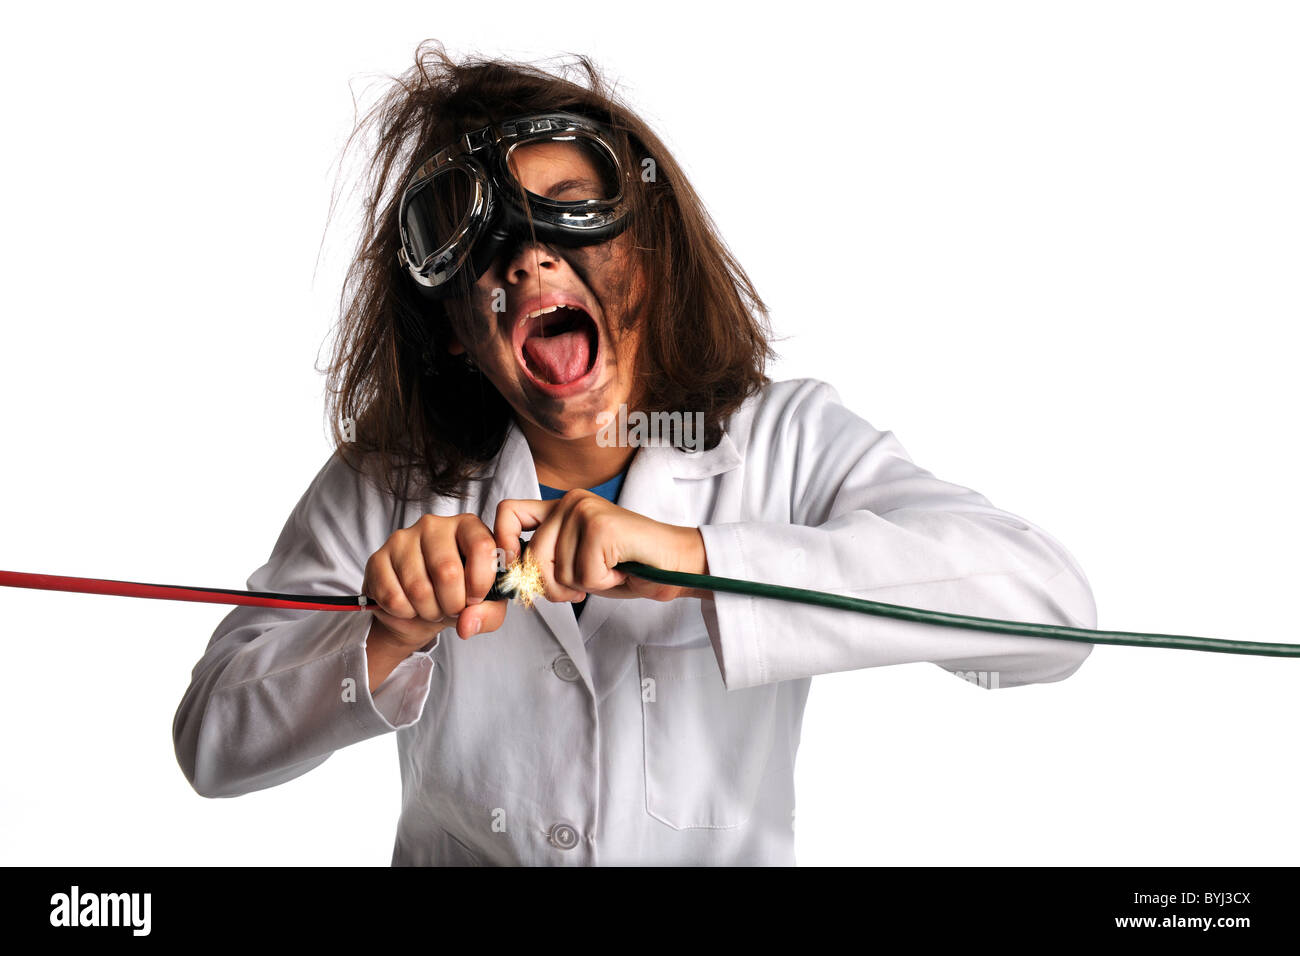 Young girl in laboratory gear being shocked by electricity isolated over white background - Stock Image